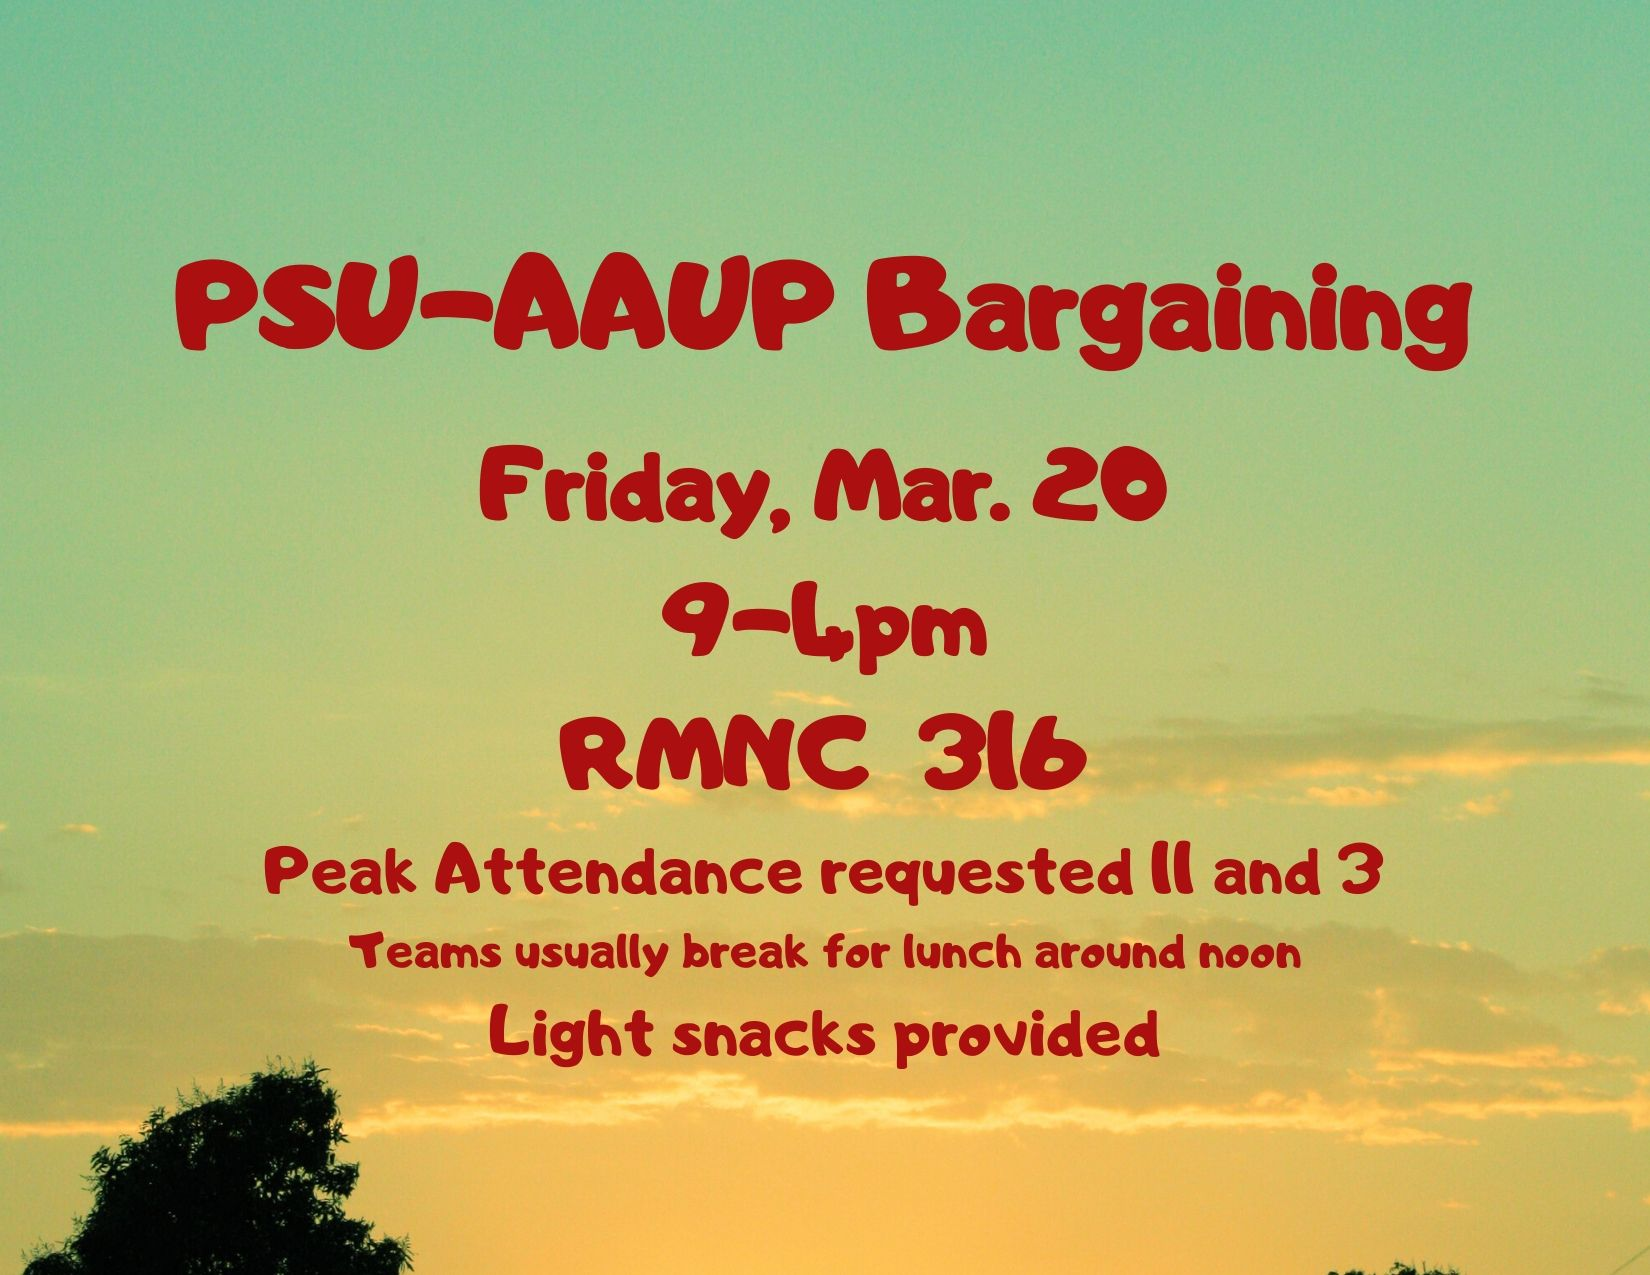 PSU-AAUP Bargaining - March 20